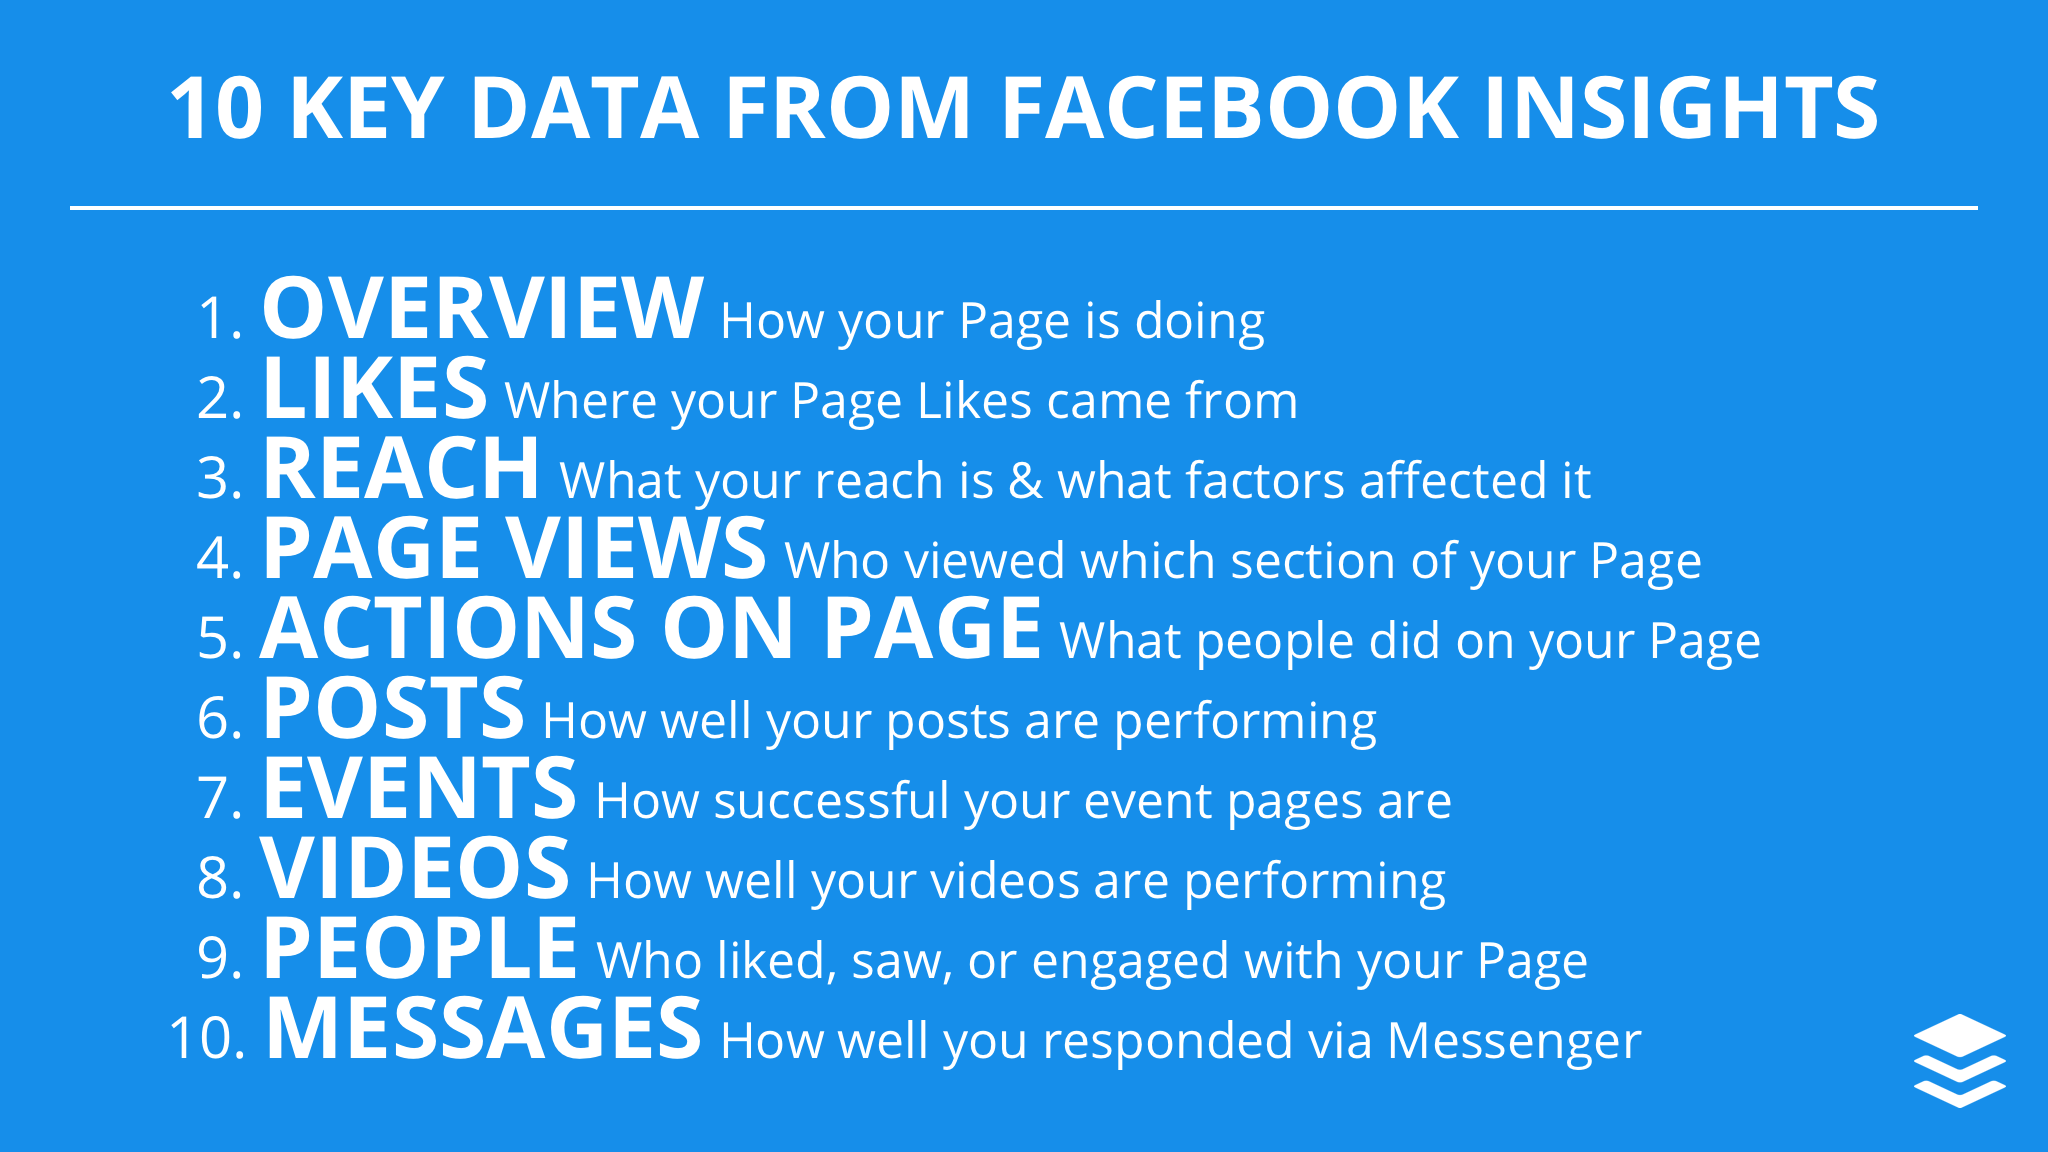 Facebook Insights Guide - 10 Data from Facebook Insights